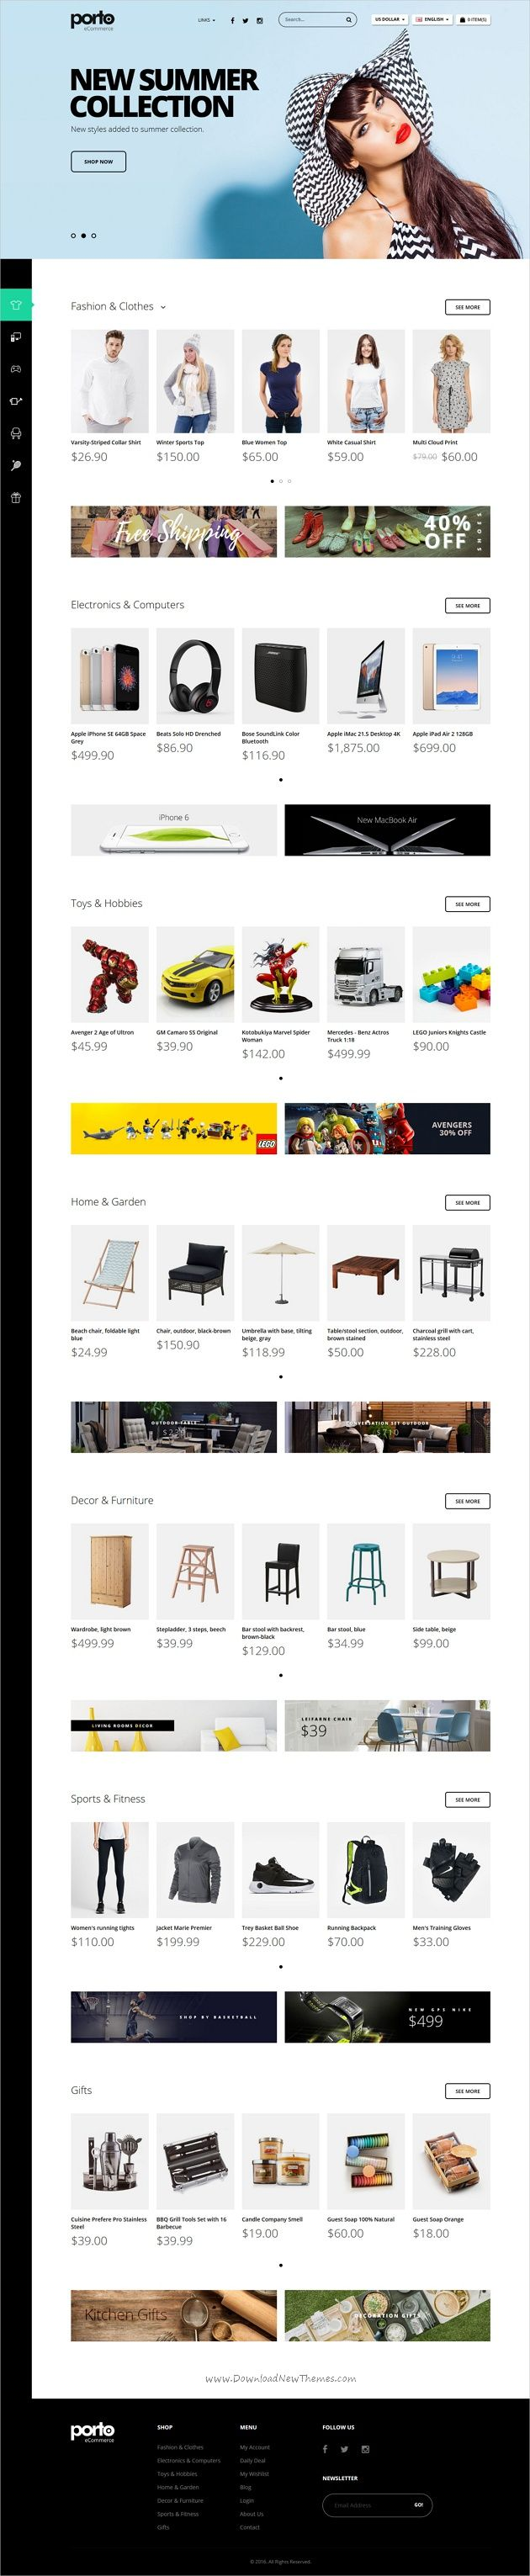 Porto is an Ultimate Responsive #Opencart Theme for #webdev stunning #eCommerce websites that is extremely customizable, easy to use and fully responsive with 20+ unique homepage layouts download now➩ https://themeforest.net/item/porto-ultimate-responsive-opencart-theme/19323881?ref=Datasata